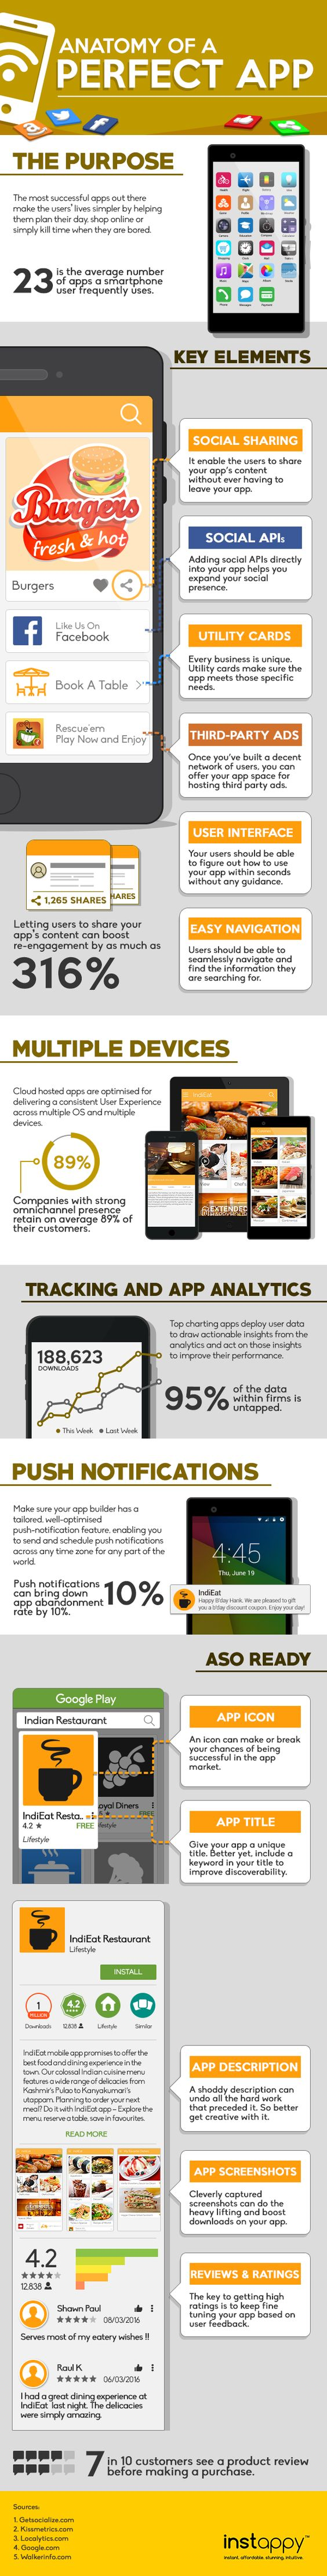 Anatomy Of A Perfect App - Image 1